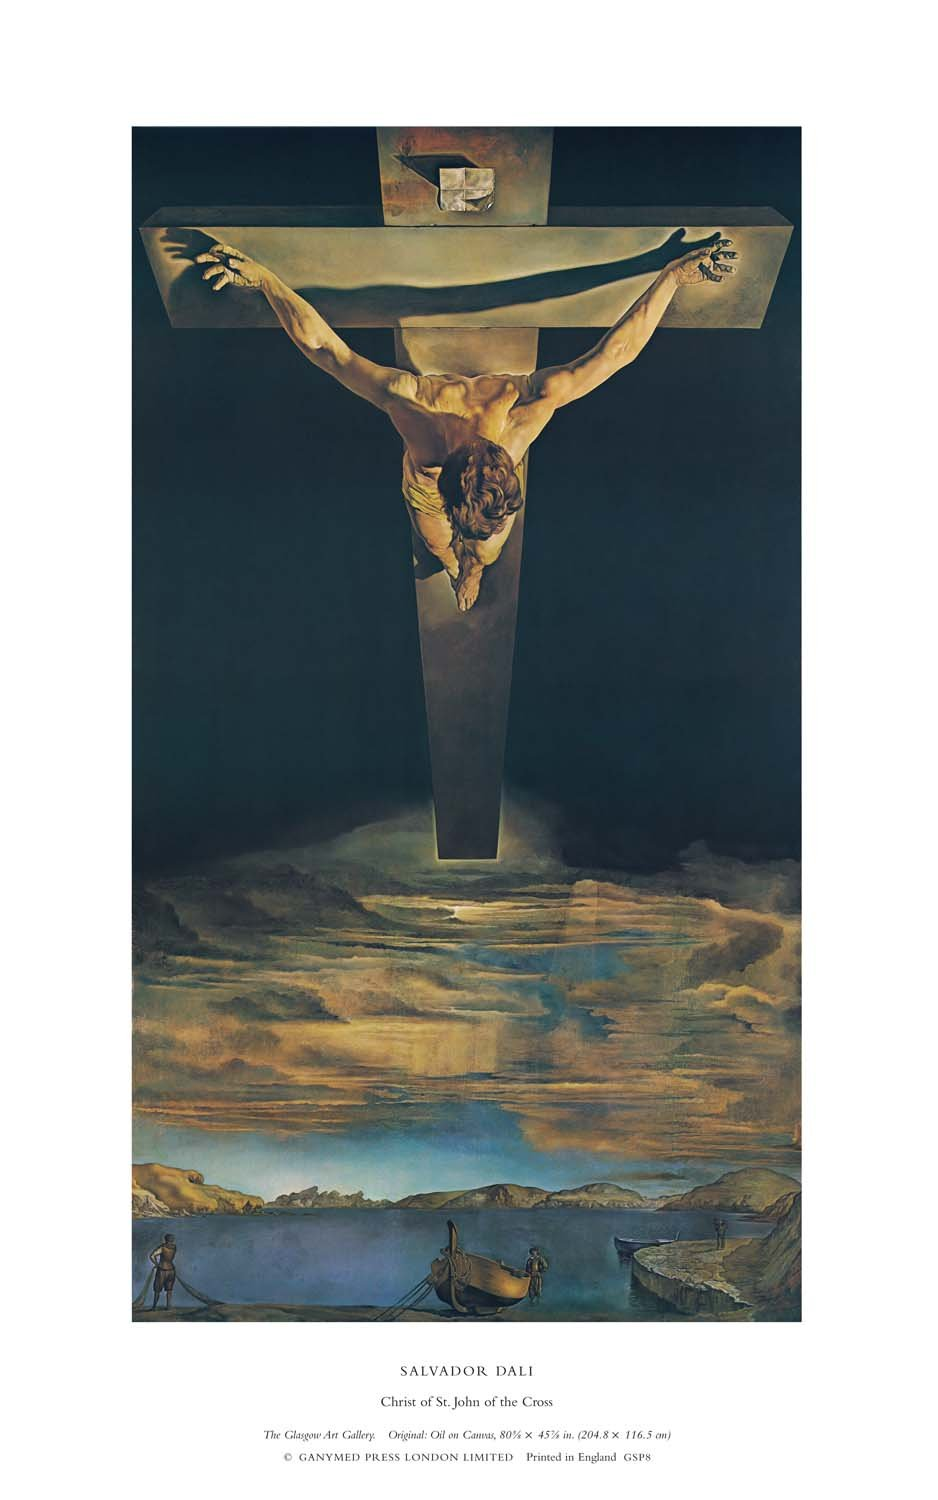 Christ of St. John of the Cross, Salvador Dali (255gsm Satin art paper, Image Size: 356mm x 190mm (14